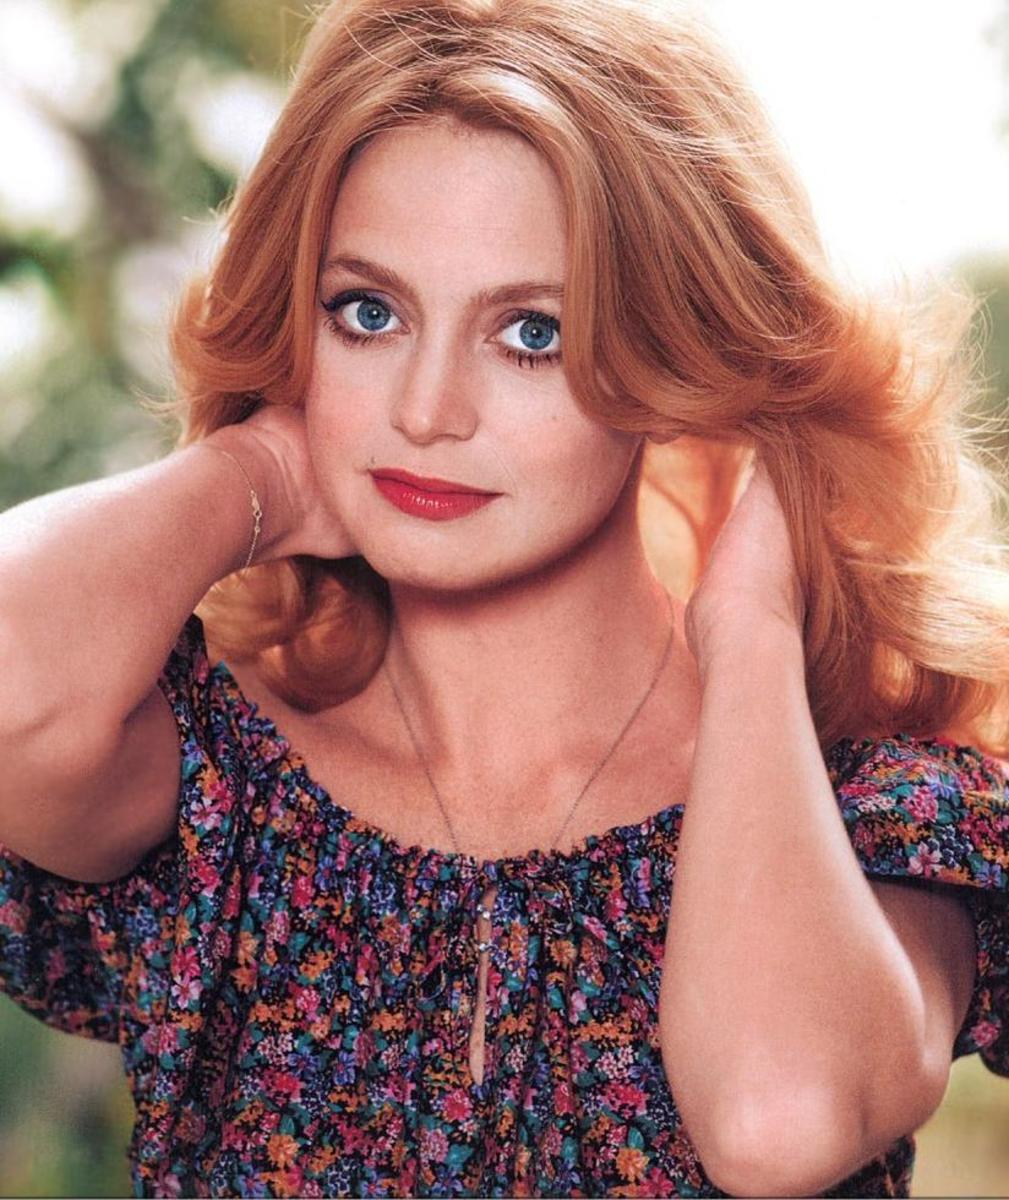 Goldie Hawn was one of the most popular actresses in the 70's and into the 80's.